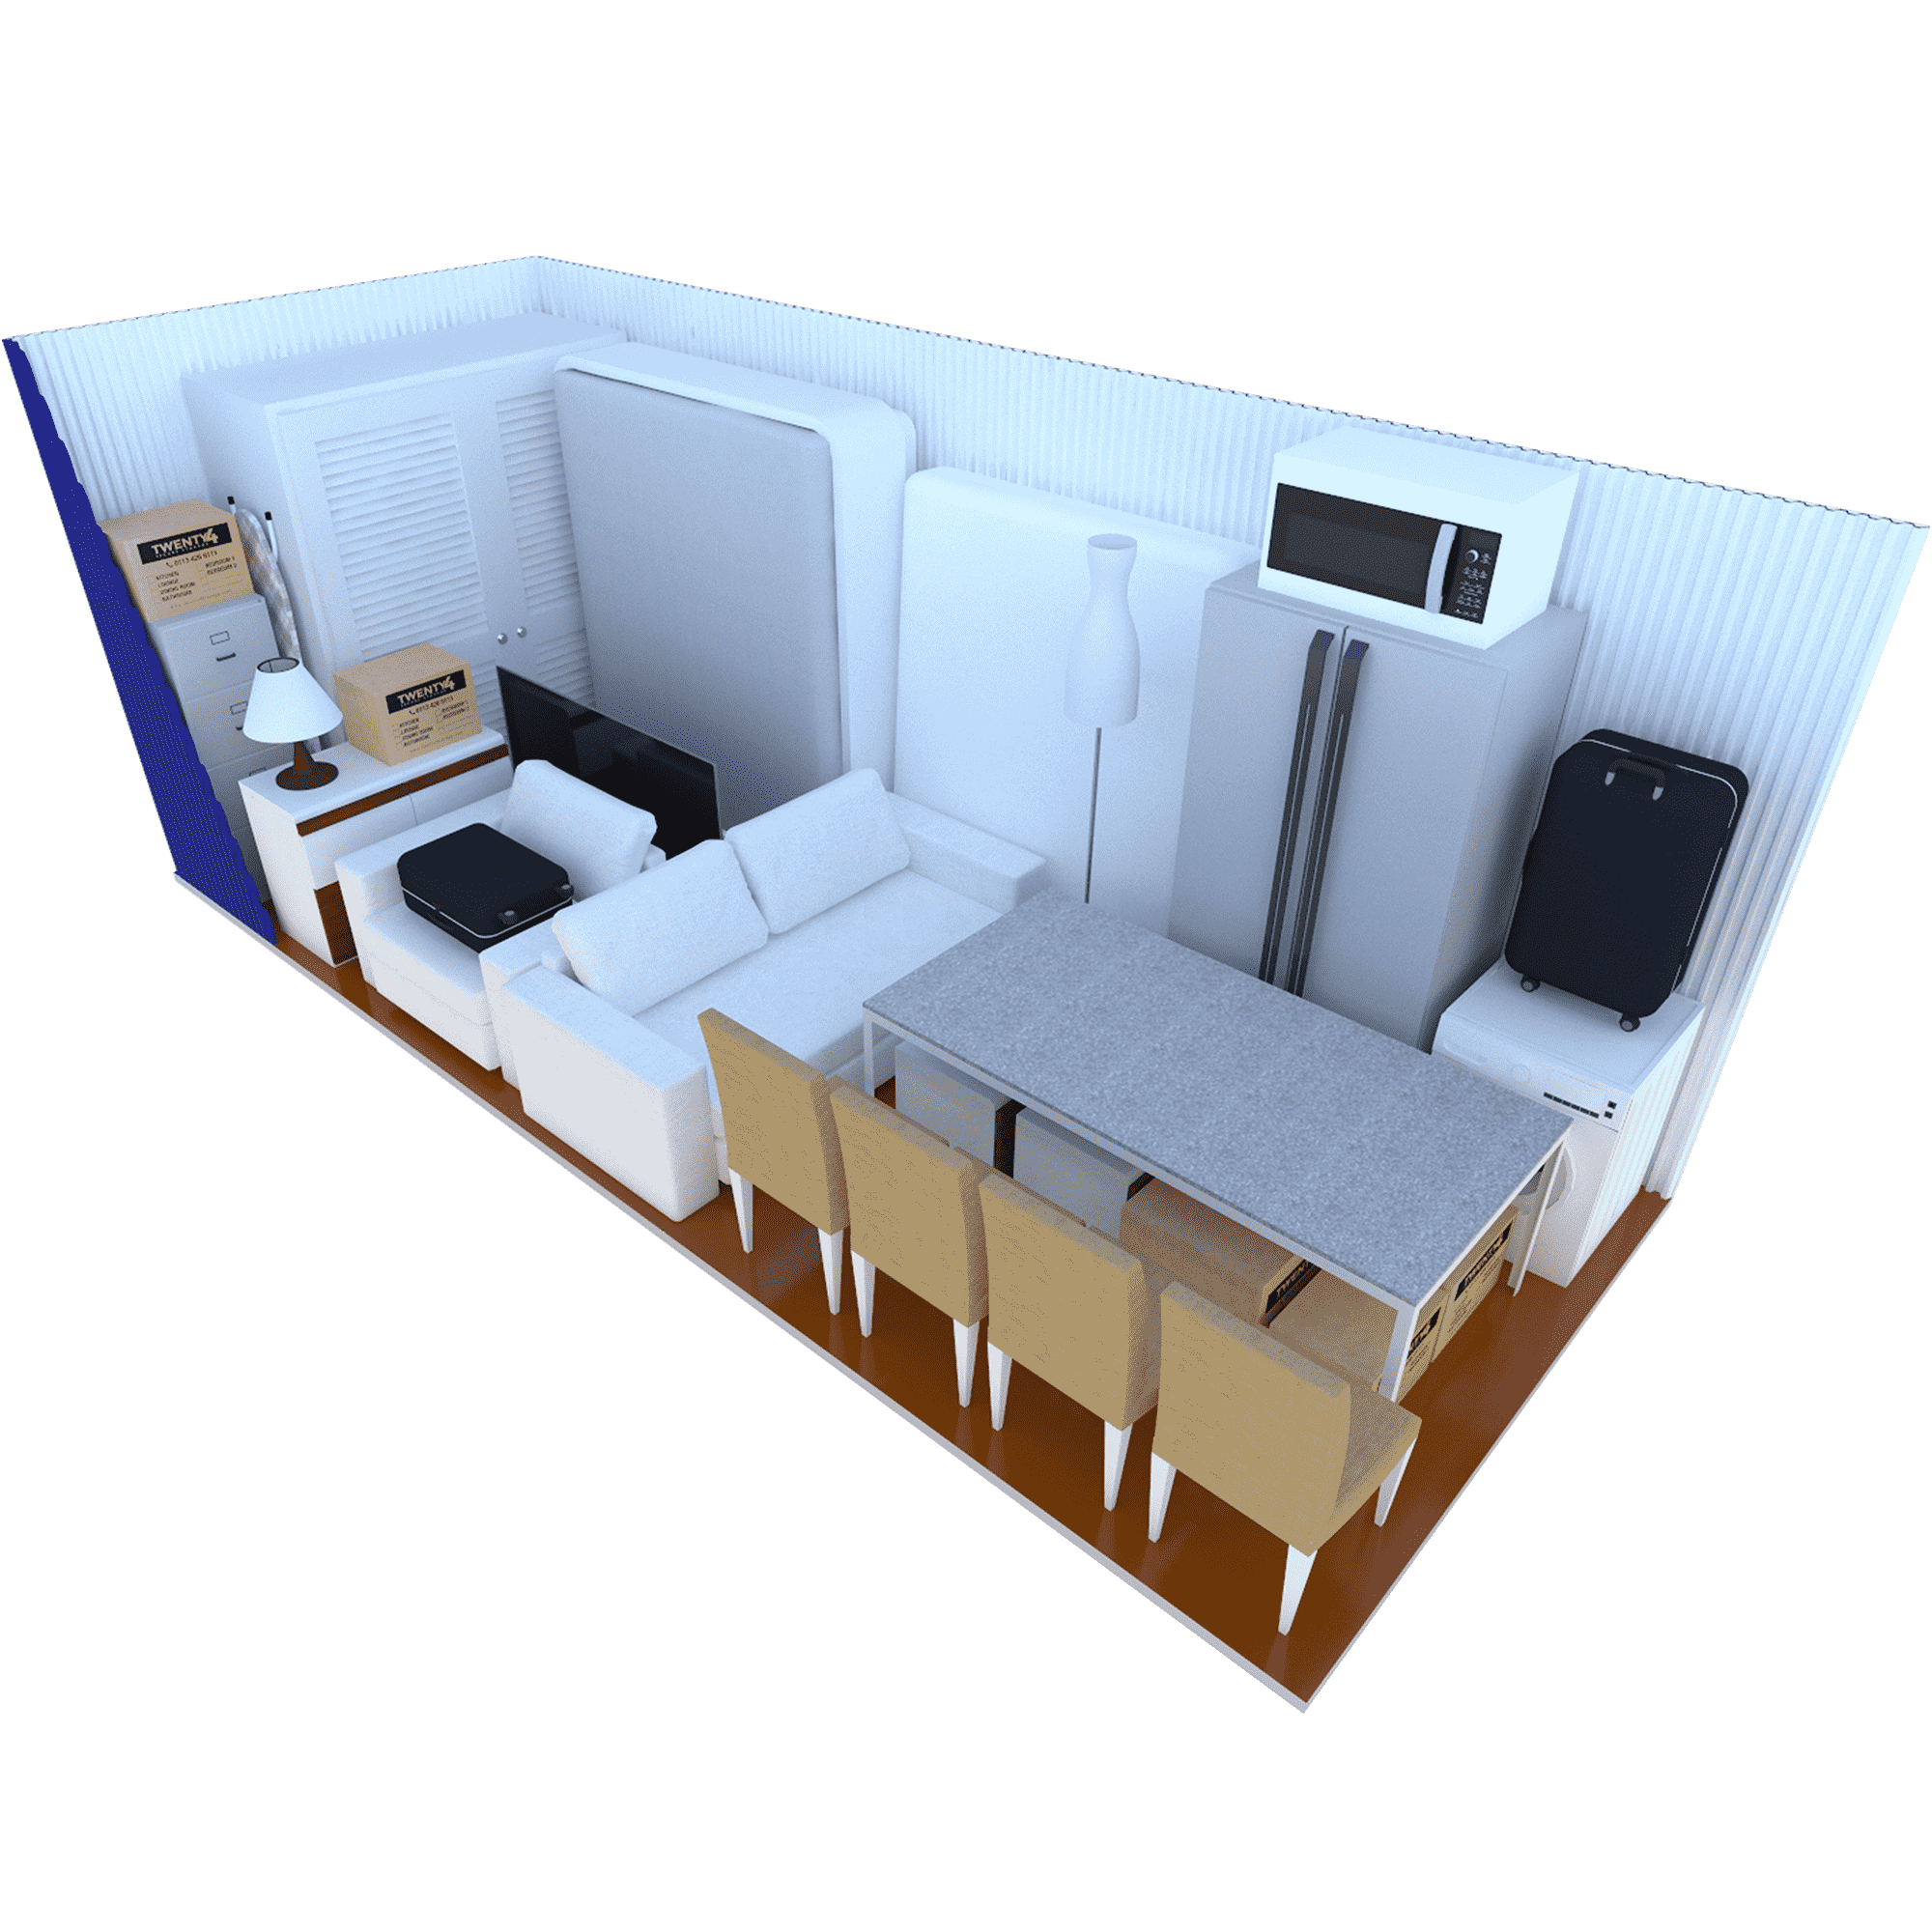 150 Sq ft Container